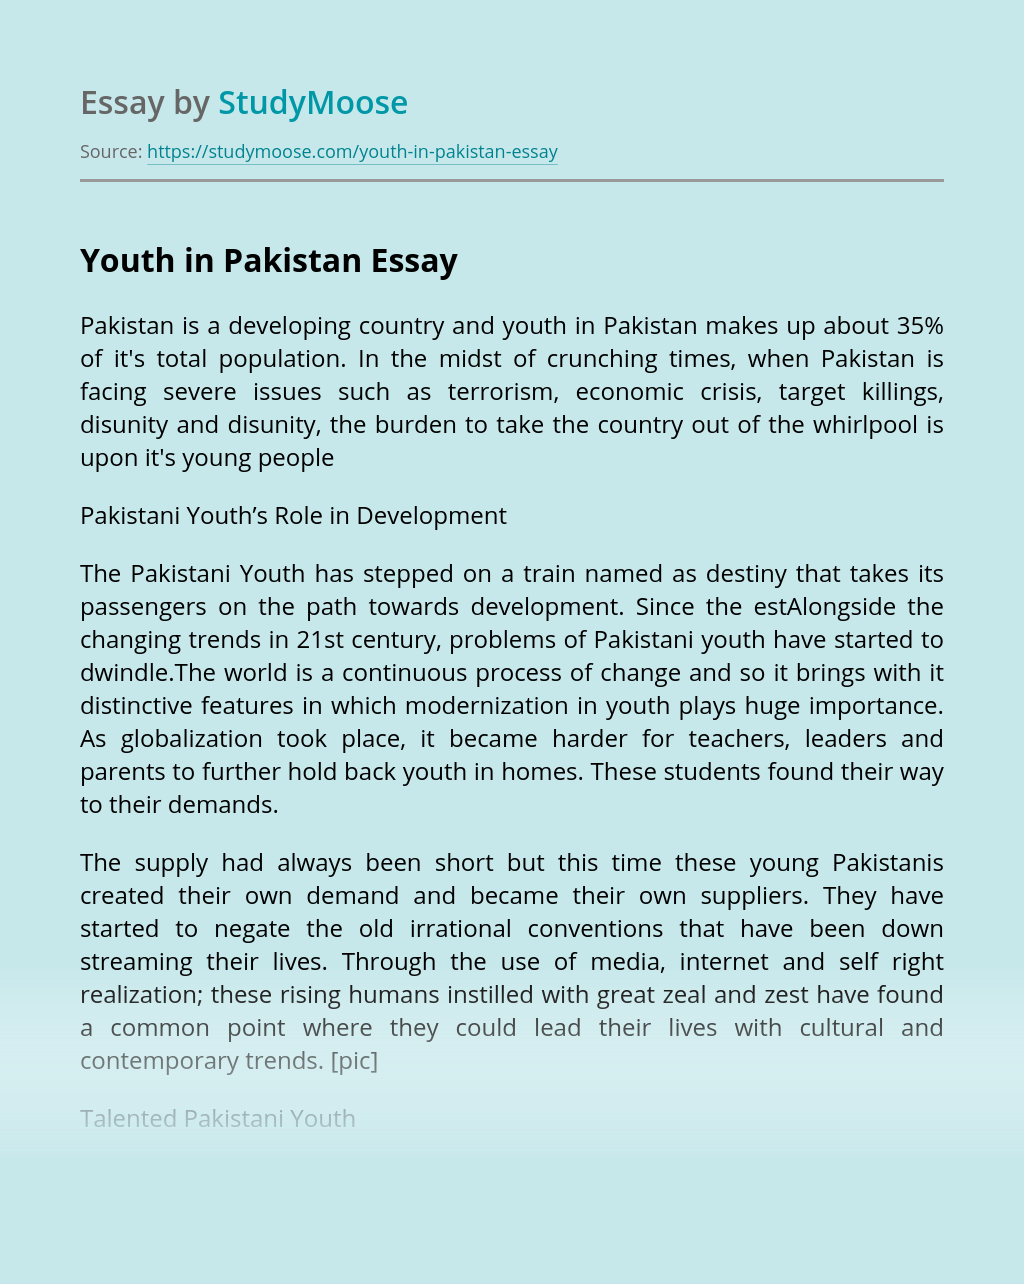 Youth in Pakistan